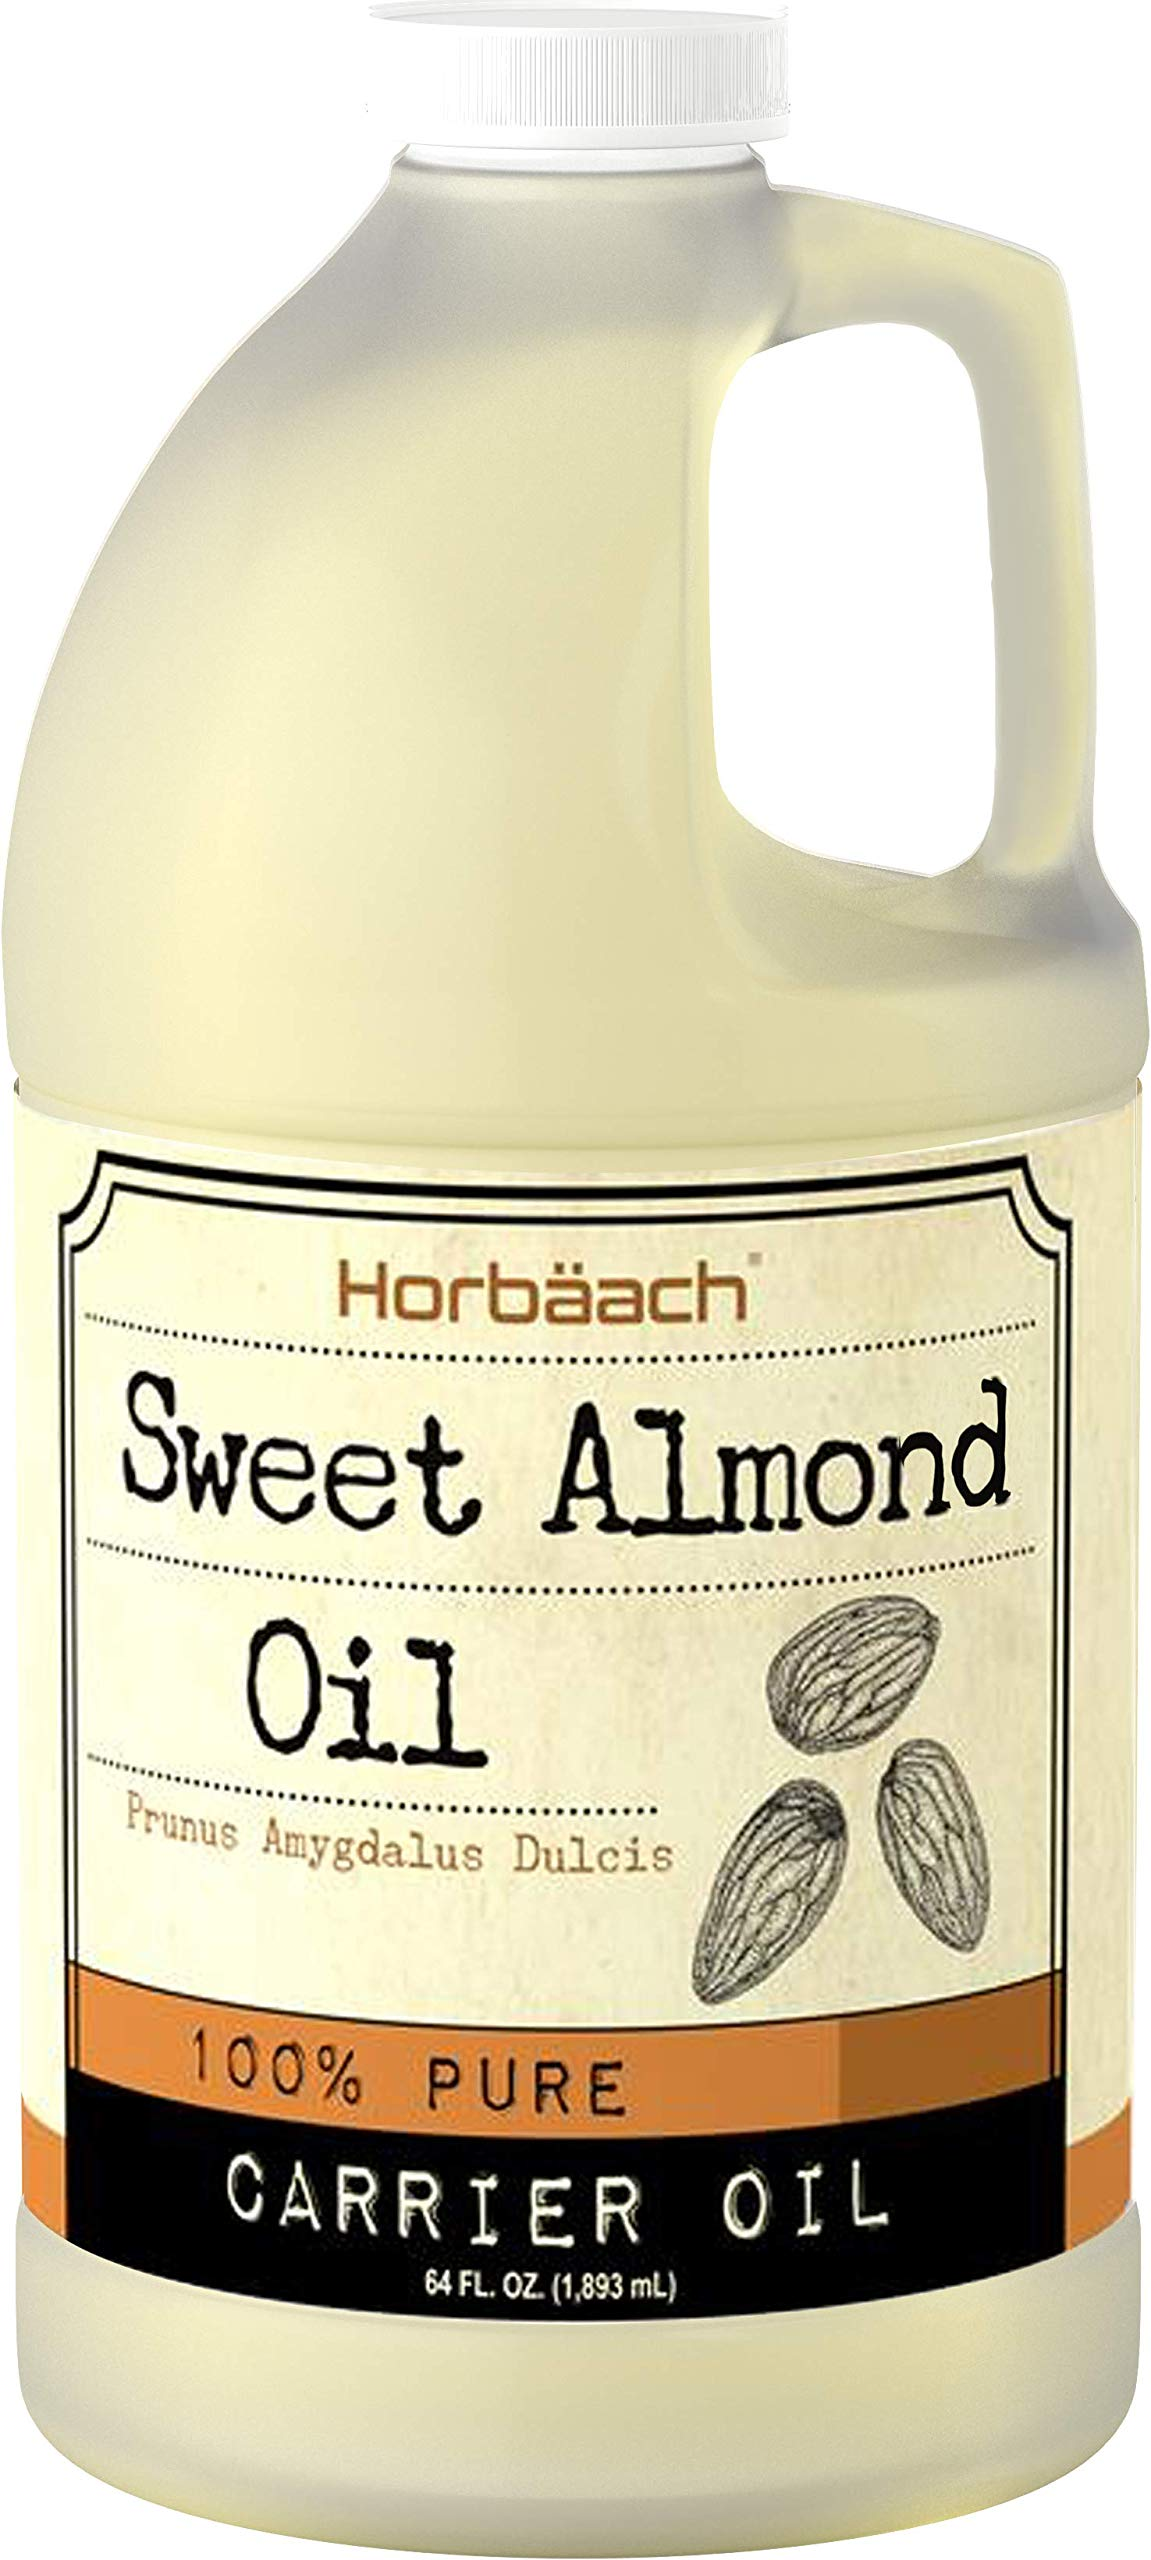 Horbaach Sweet Almond Oil 64 fl oz 100% Pure   for Hair, Face & Skin   Expeller Pressed   Vegetarian, Non-GMO by Horbäach